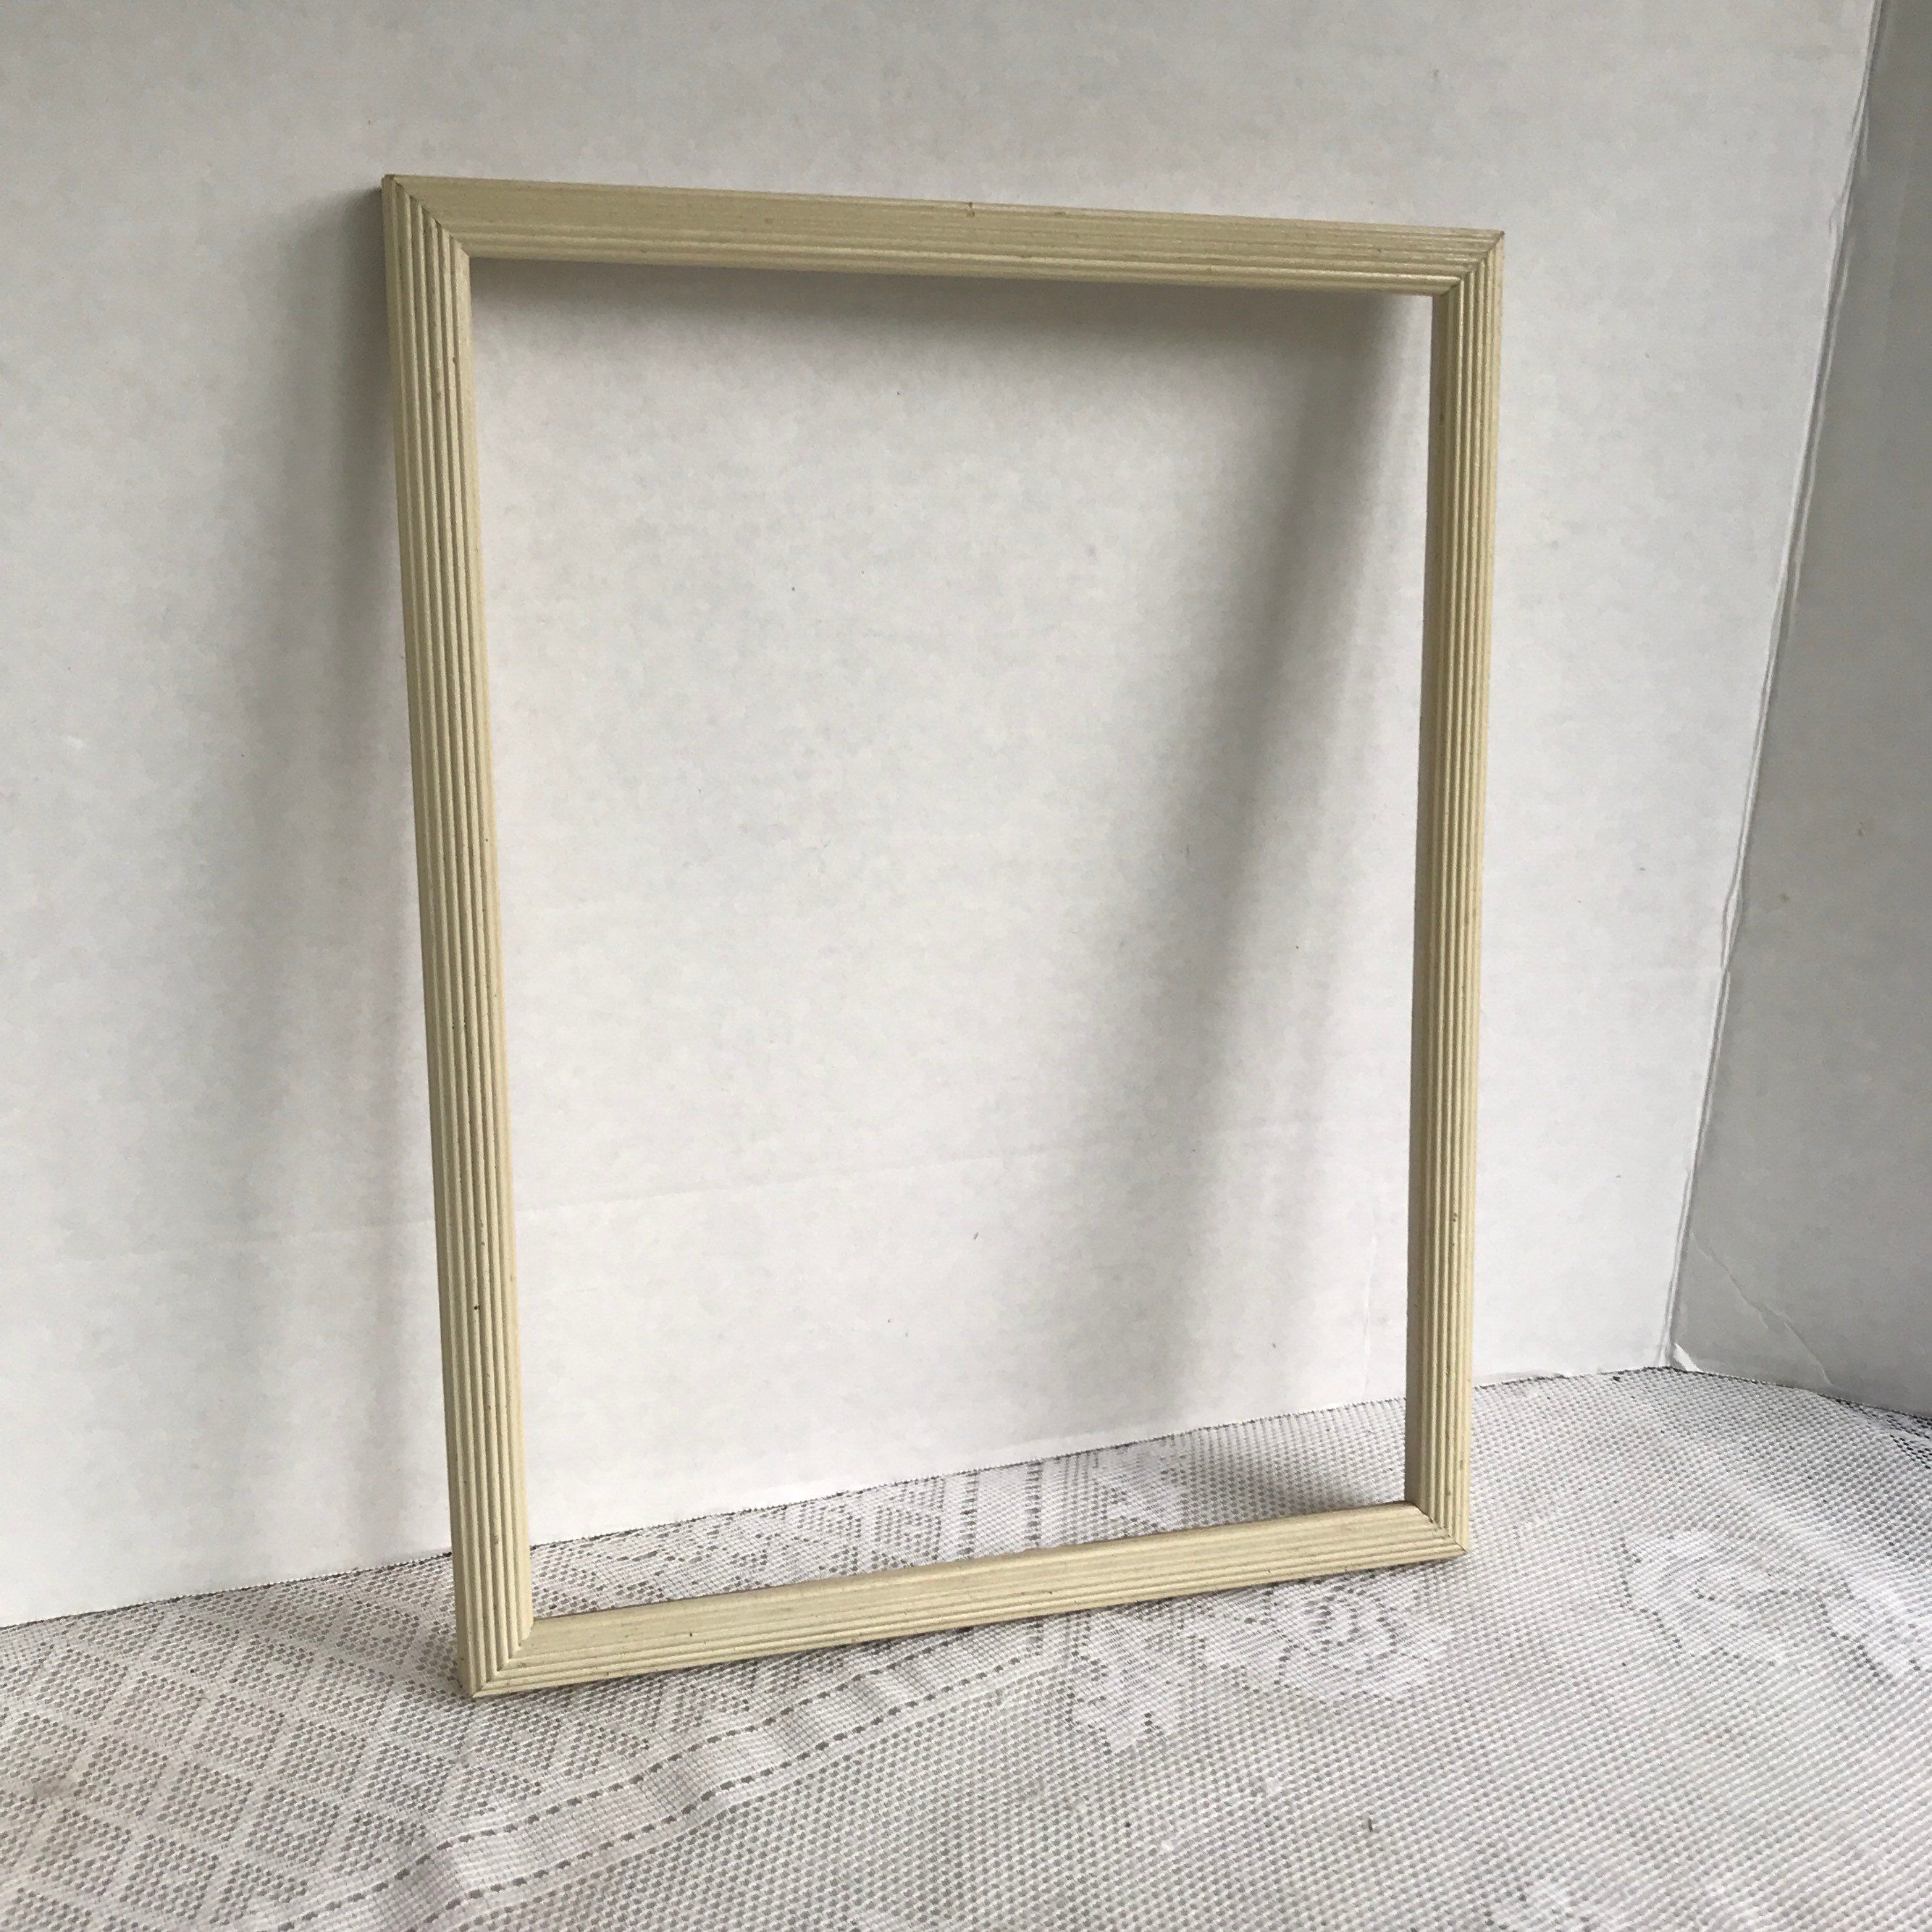 Vintage White Wooden Picture Frame 9 X 12 Inch Wood Frame Wooden Picture Frames Picture Frames Wood Frame